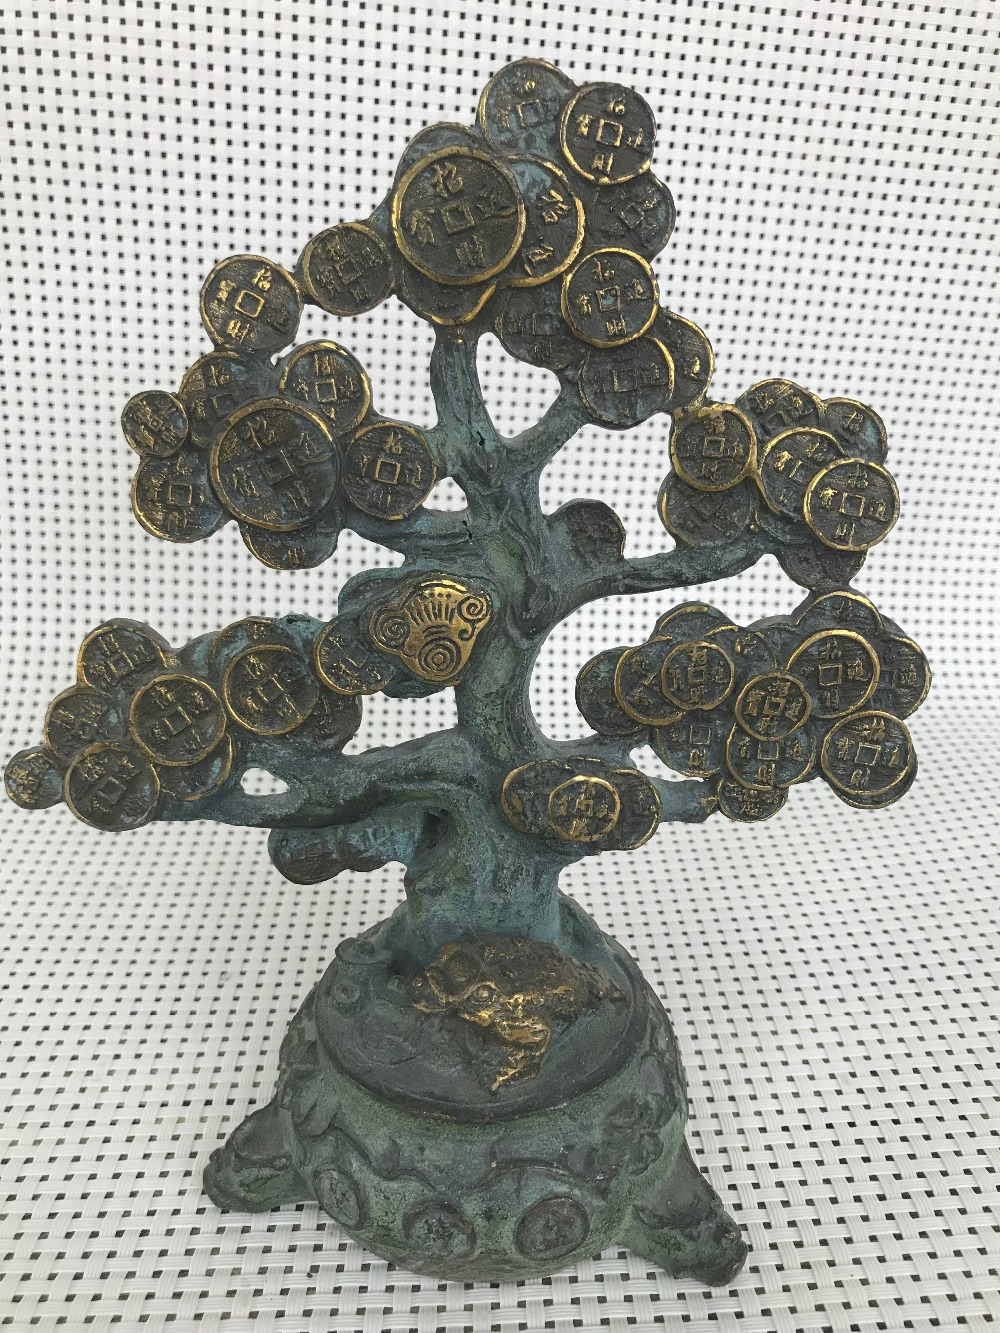 Chinese Copper sculpture China Earn money tree Statue statues for decoration Home DecorationsChinese Copper sculpture China Earn money tree Statue statues for decoration Home Decorations